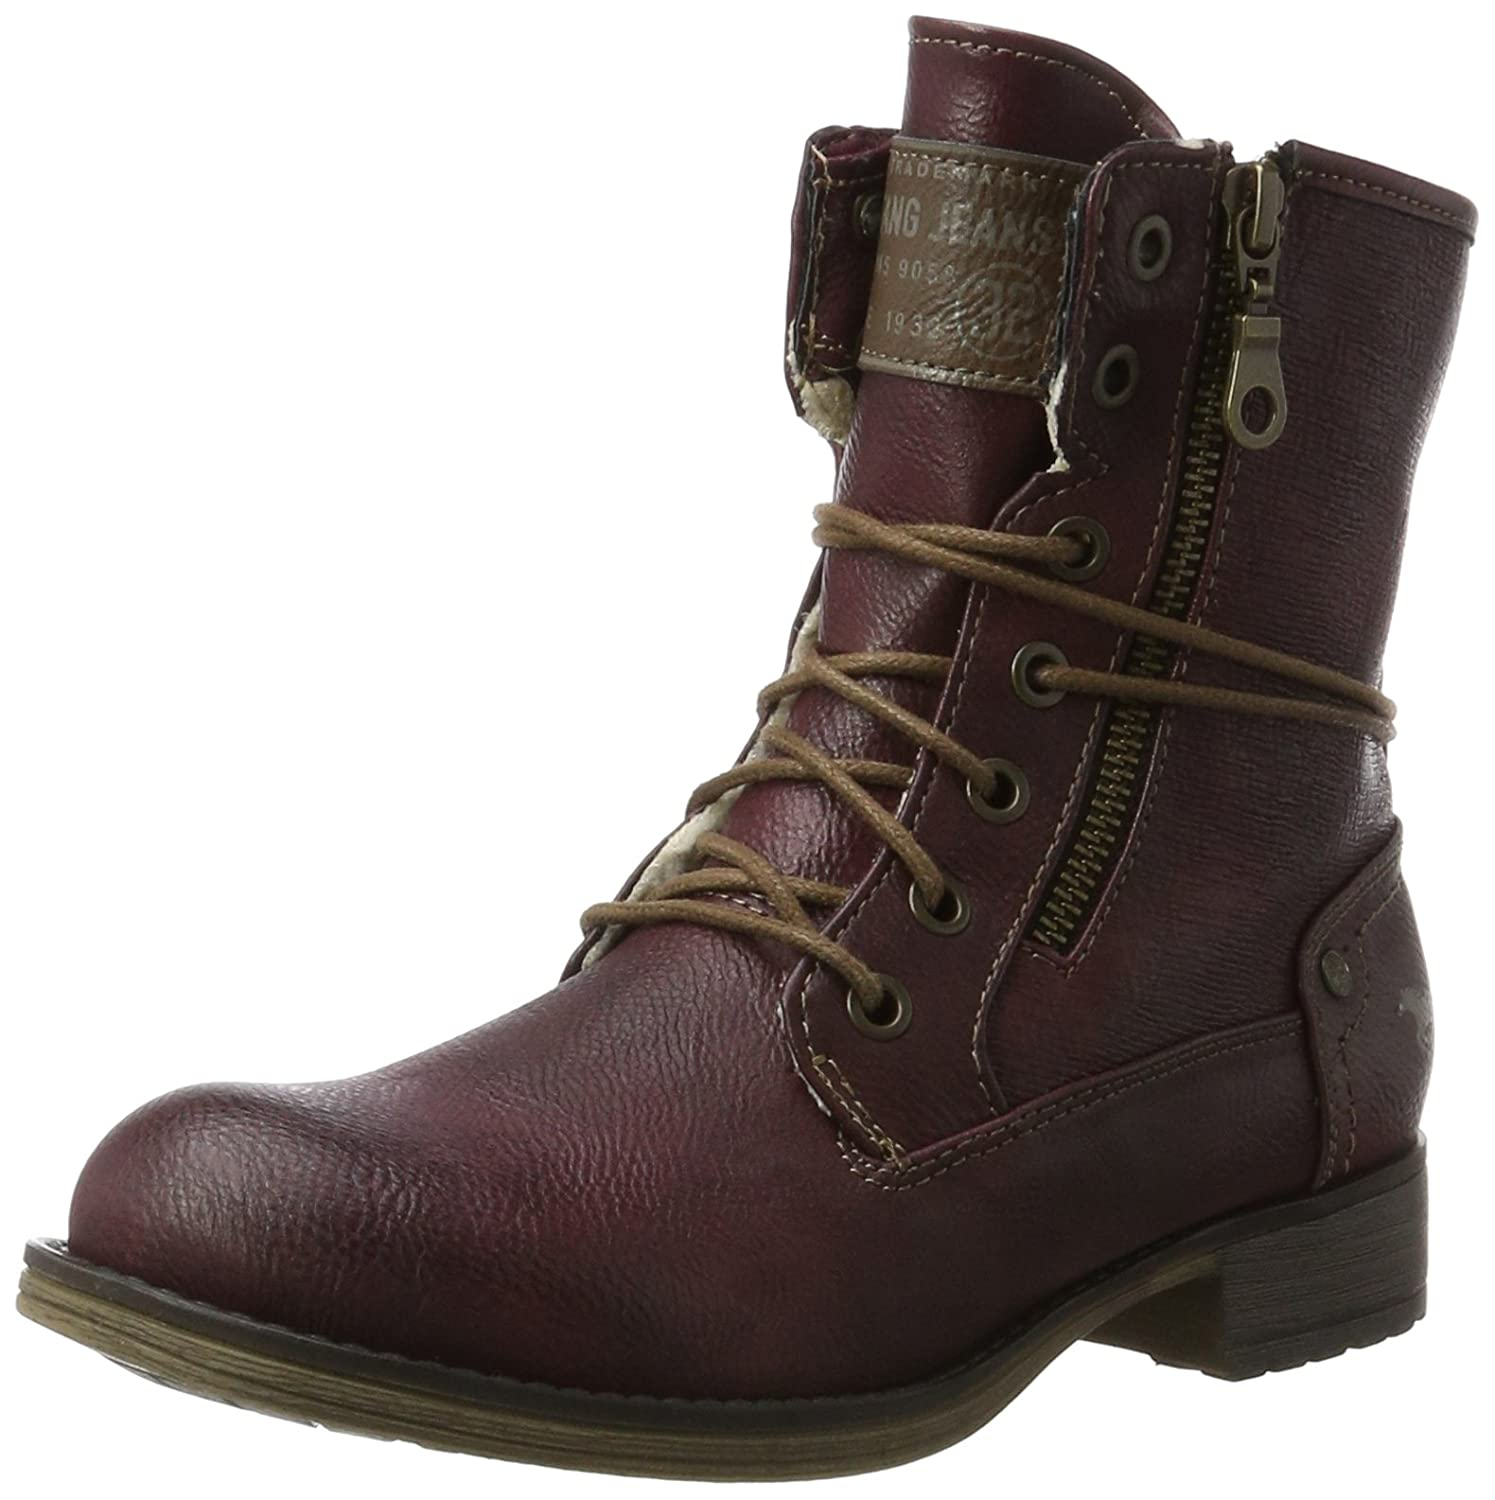 Mustang Mustang 1139-629-55, Bottes 17743 Rouge Femme Rouge (Bordeaux) 77939b2 - fast-weightloss-diet.space